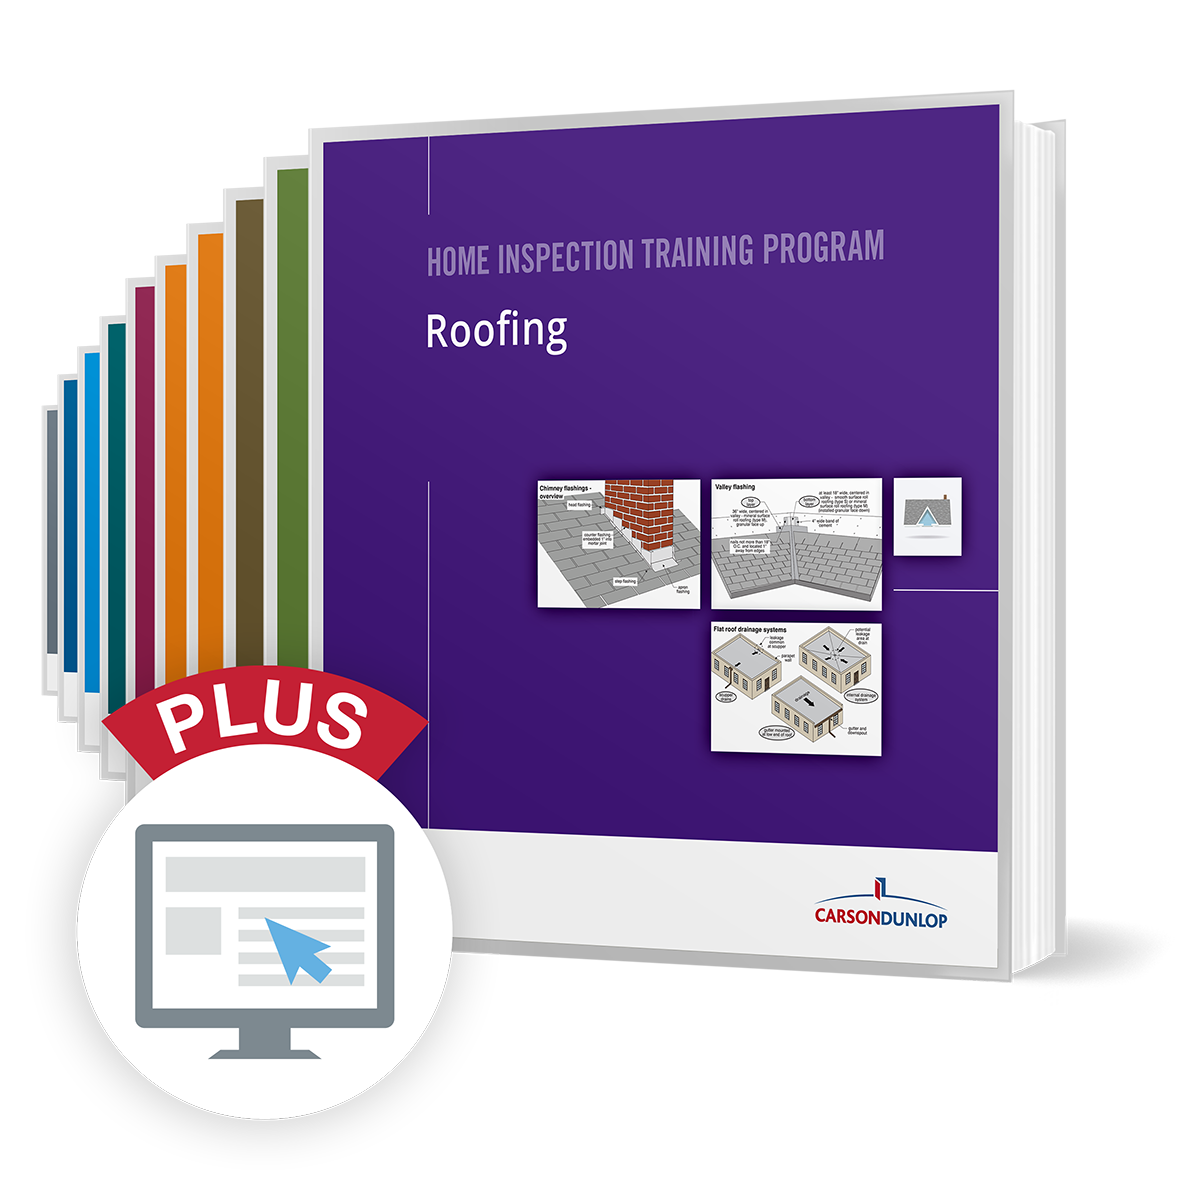 Complete Home Inspection Training Program with computer icon for online component